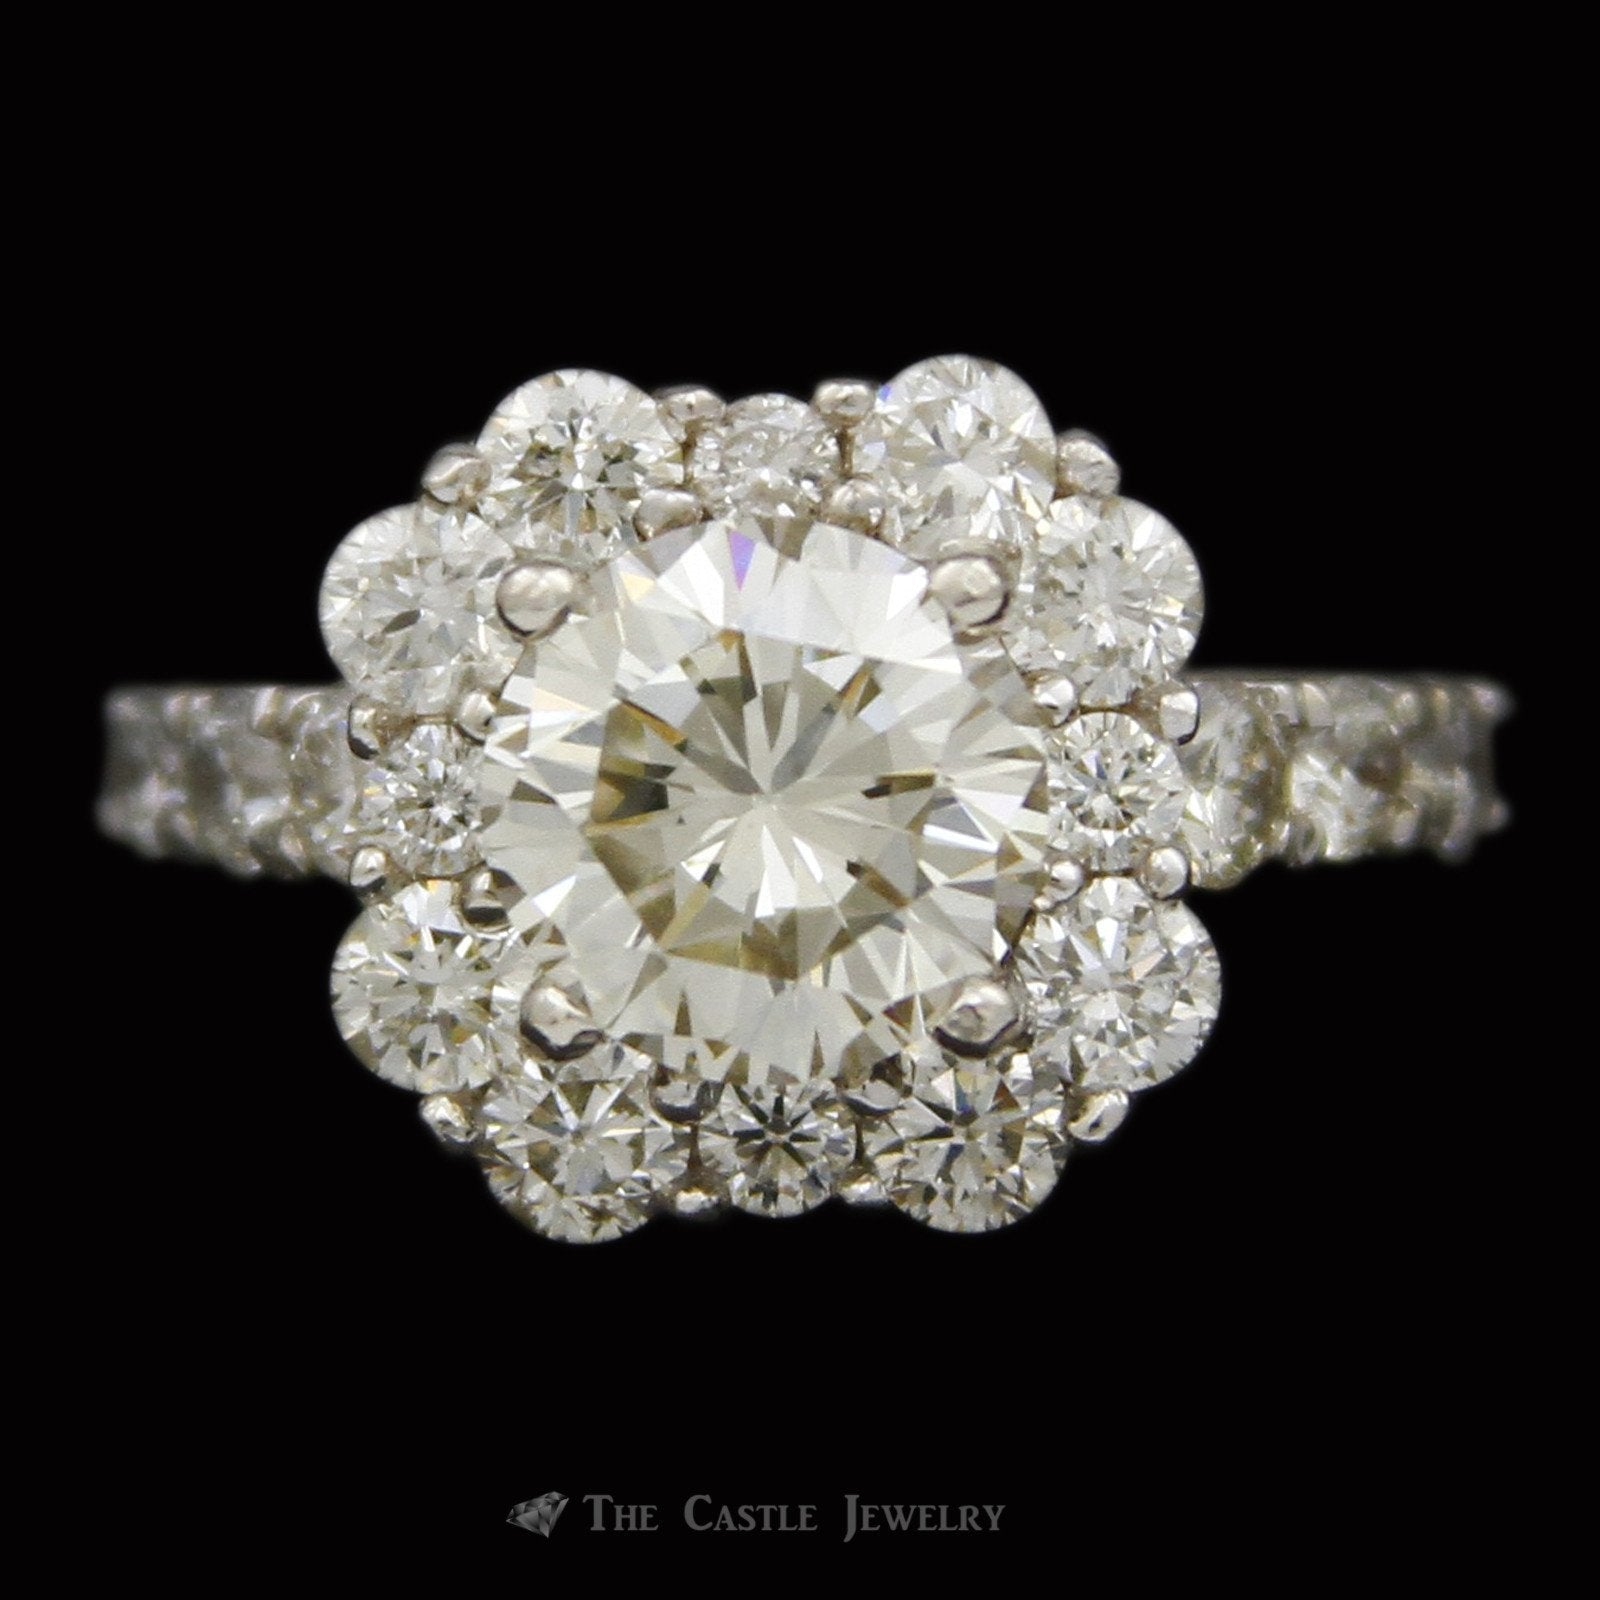 2.54ct Round Brilliant Cut Diamond Engagement Ring w/ Stunning Round Diamond Bezel & Sides in 14k